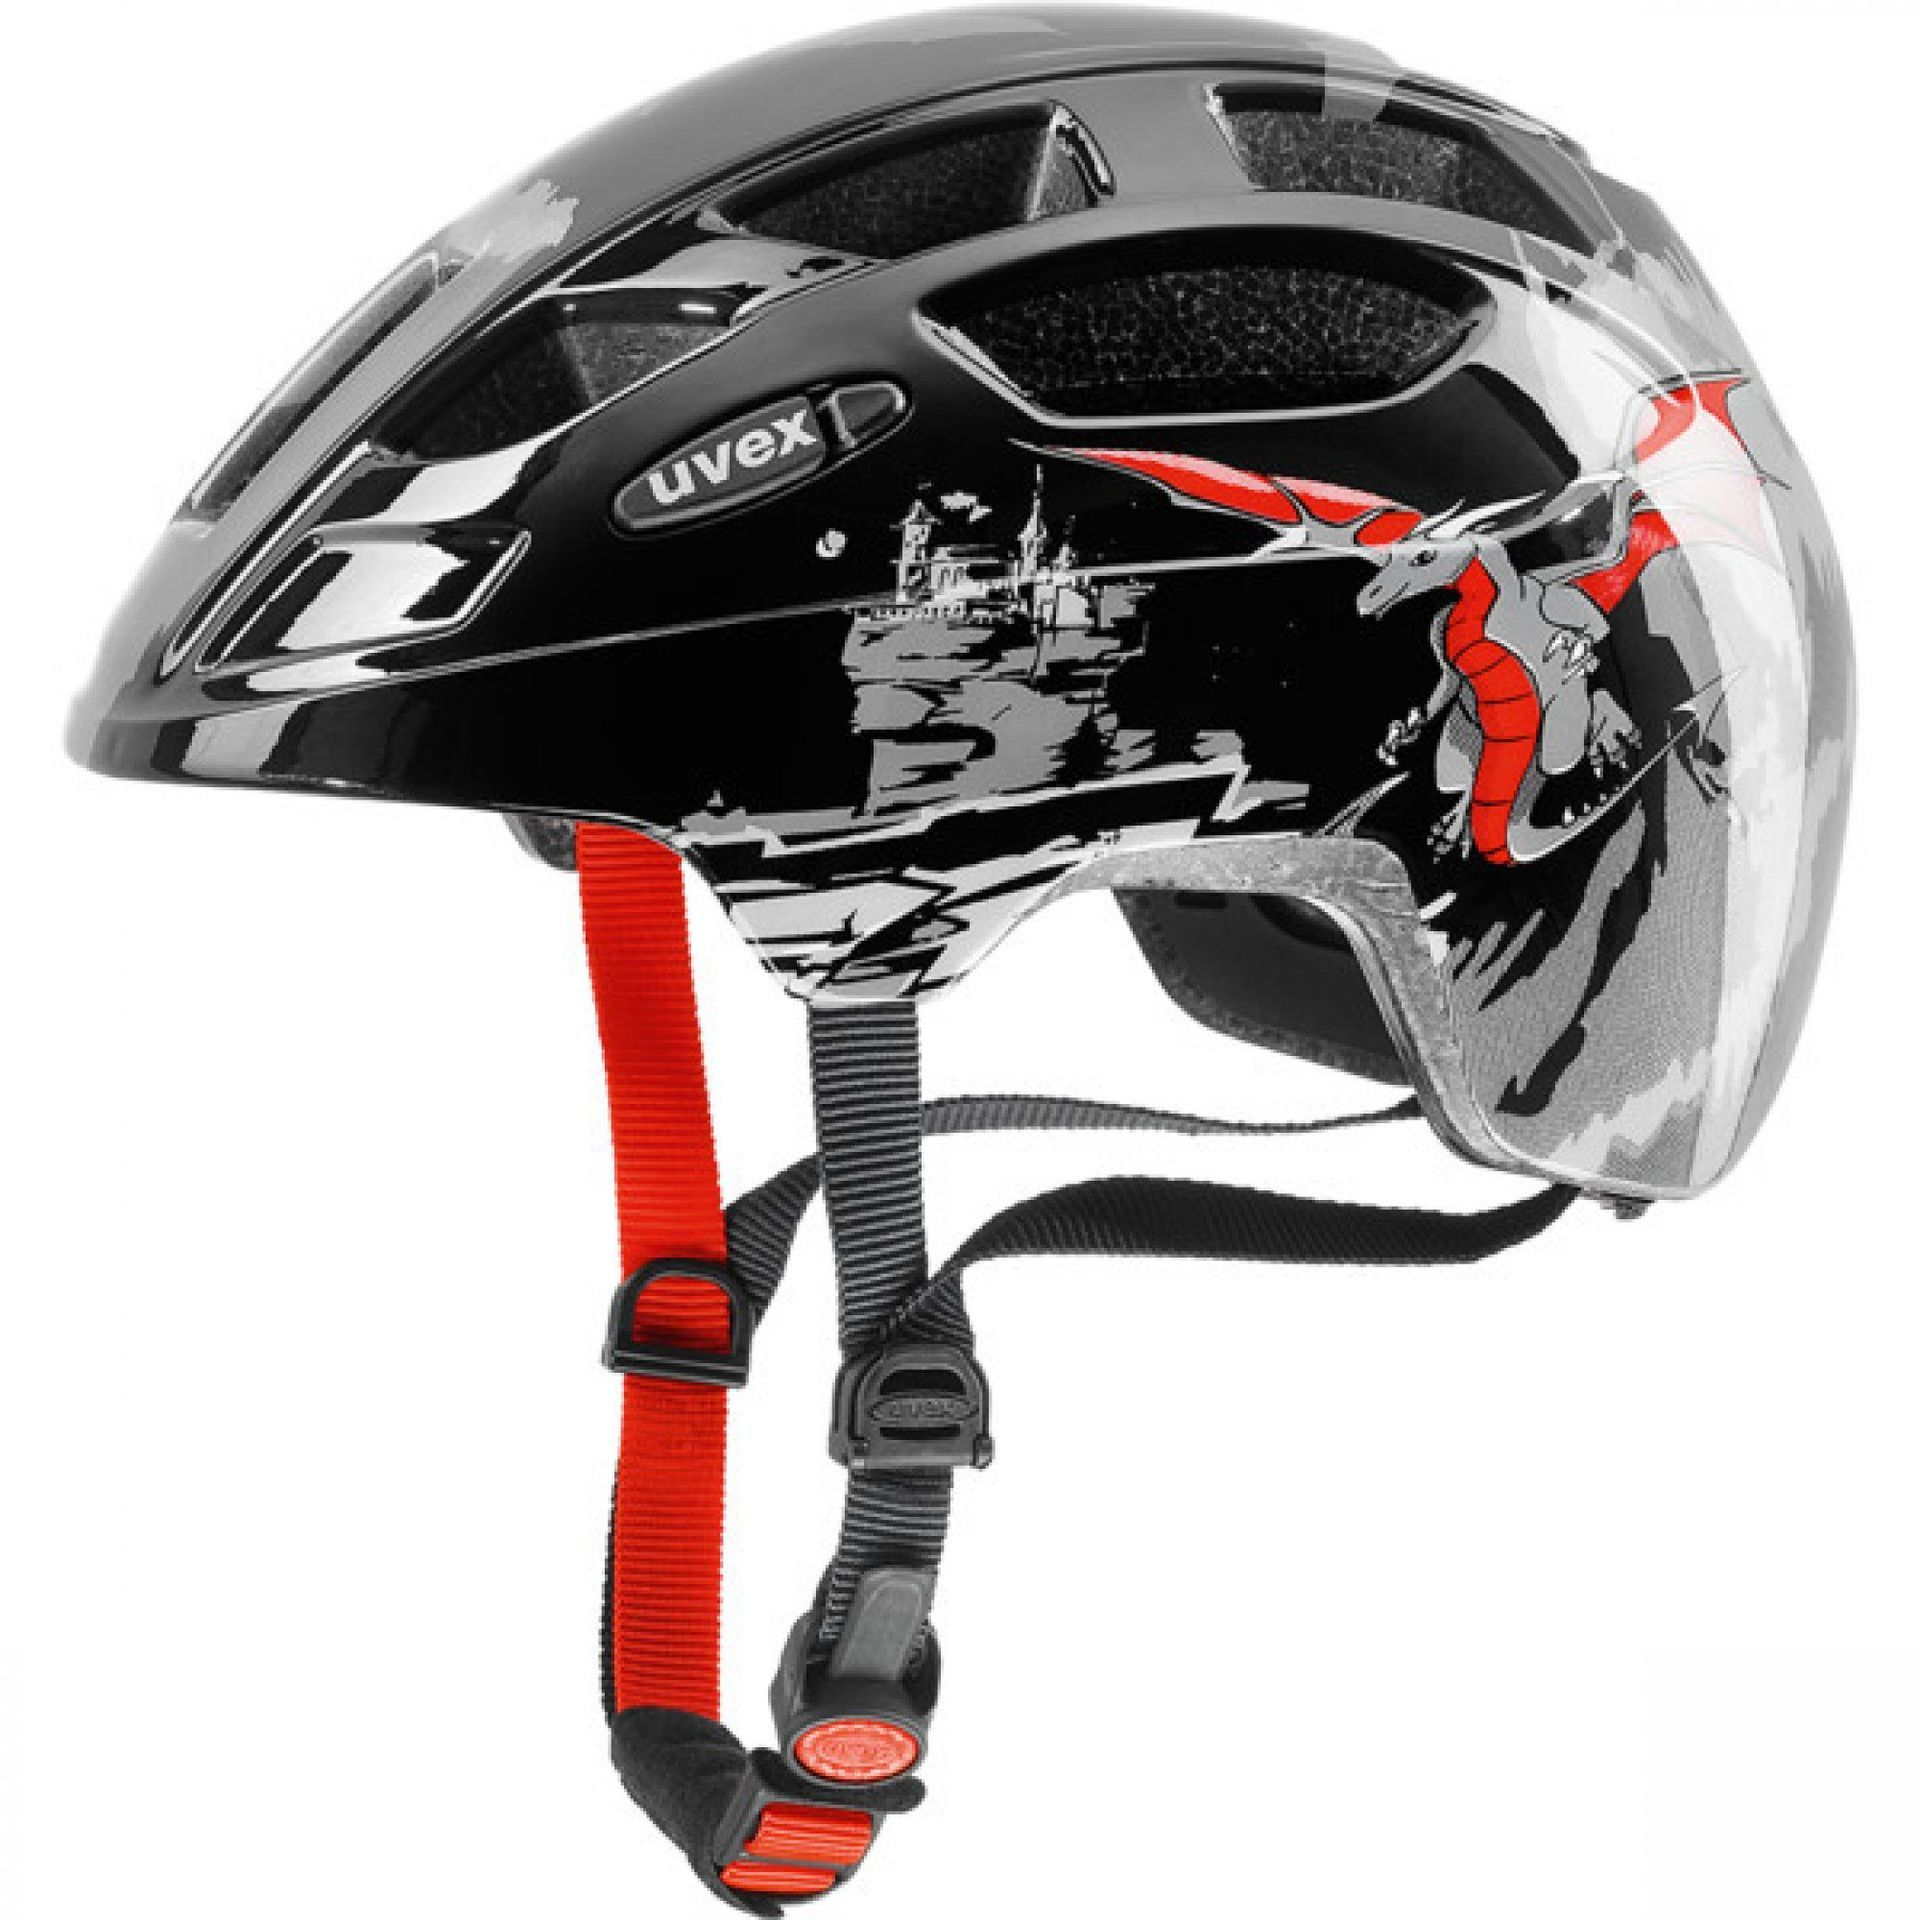 KASK ROWEROWY UVEX FINALE JUNIOR 807|05 DRAGON RED BLACK